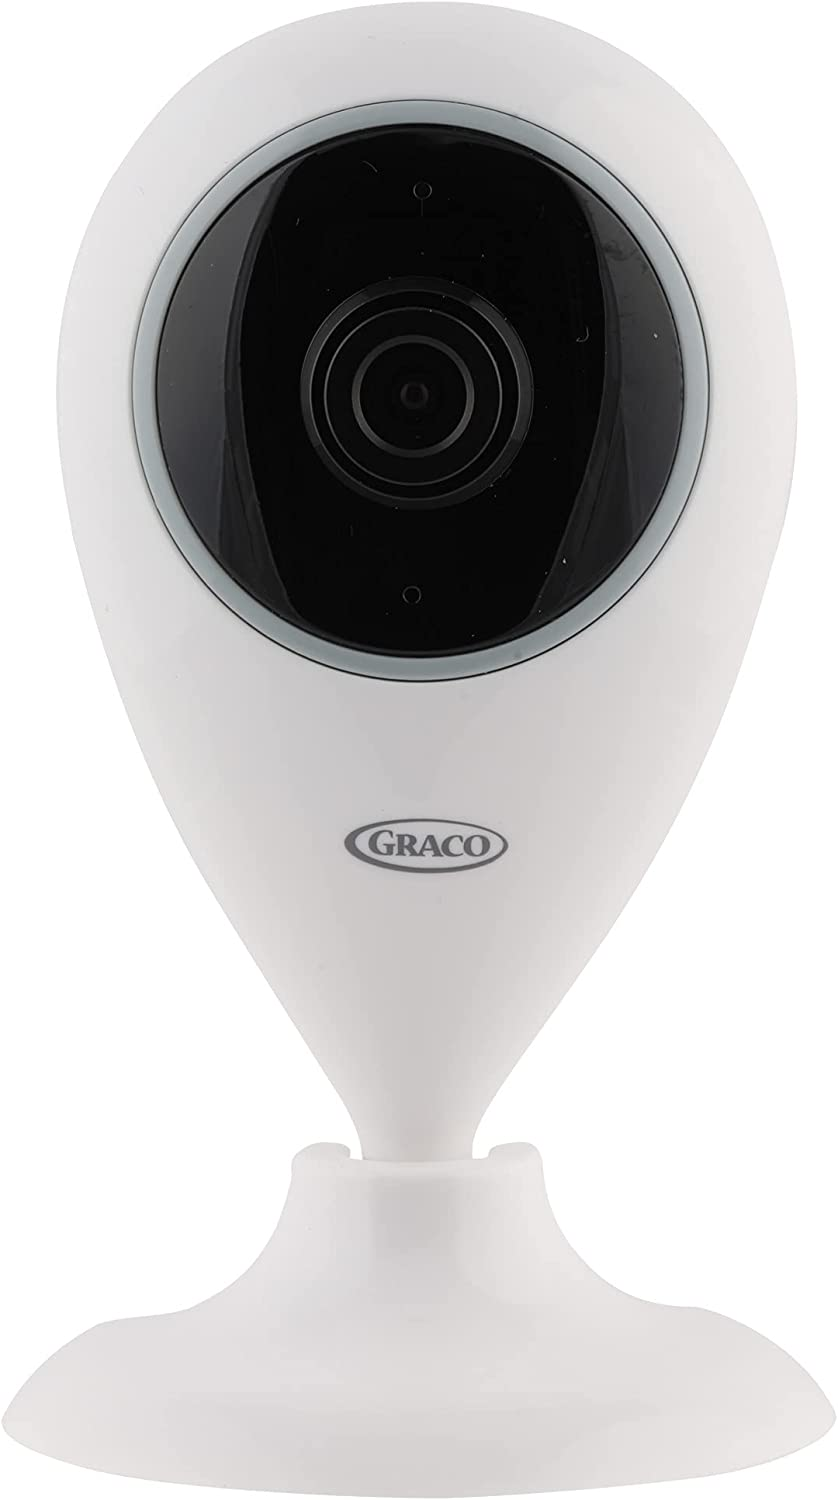 Graco Baby Smart Home Security Camera, Indoor Wide Angle WiFi Camera for Home Security with Night Vision, Motion Alerts, Two Way Communication, Pet and Baby Monitor Surveillance Camera (White)